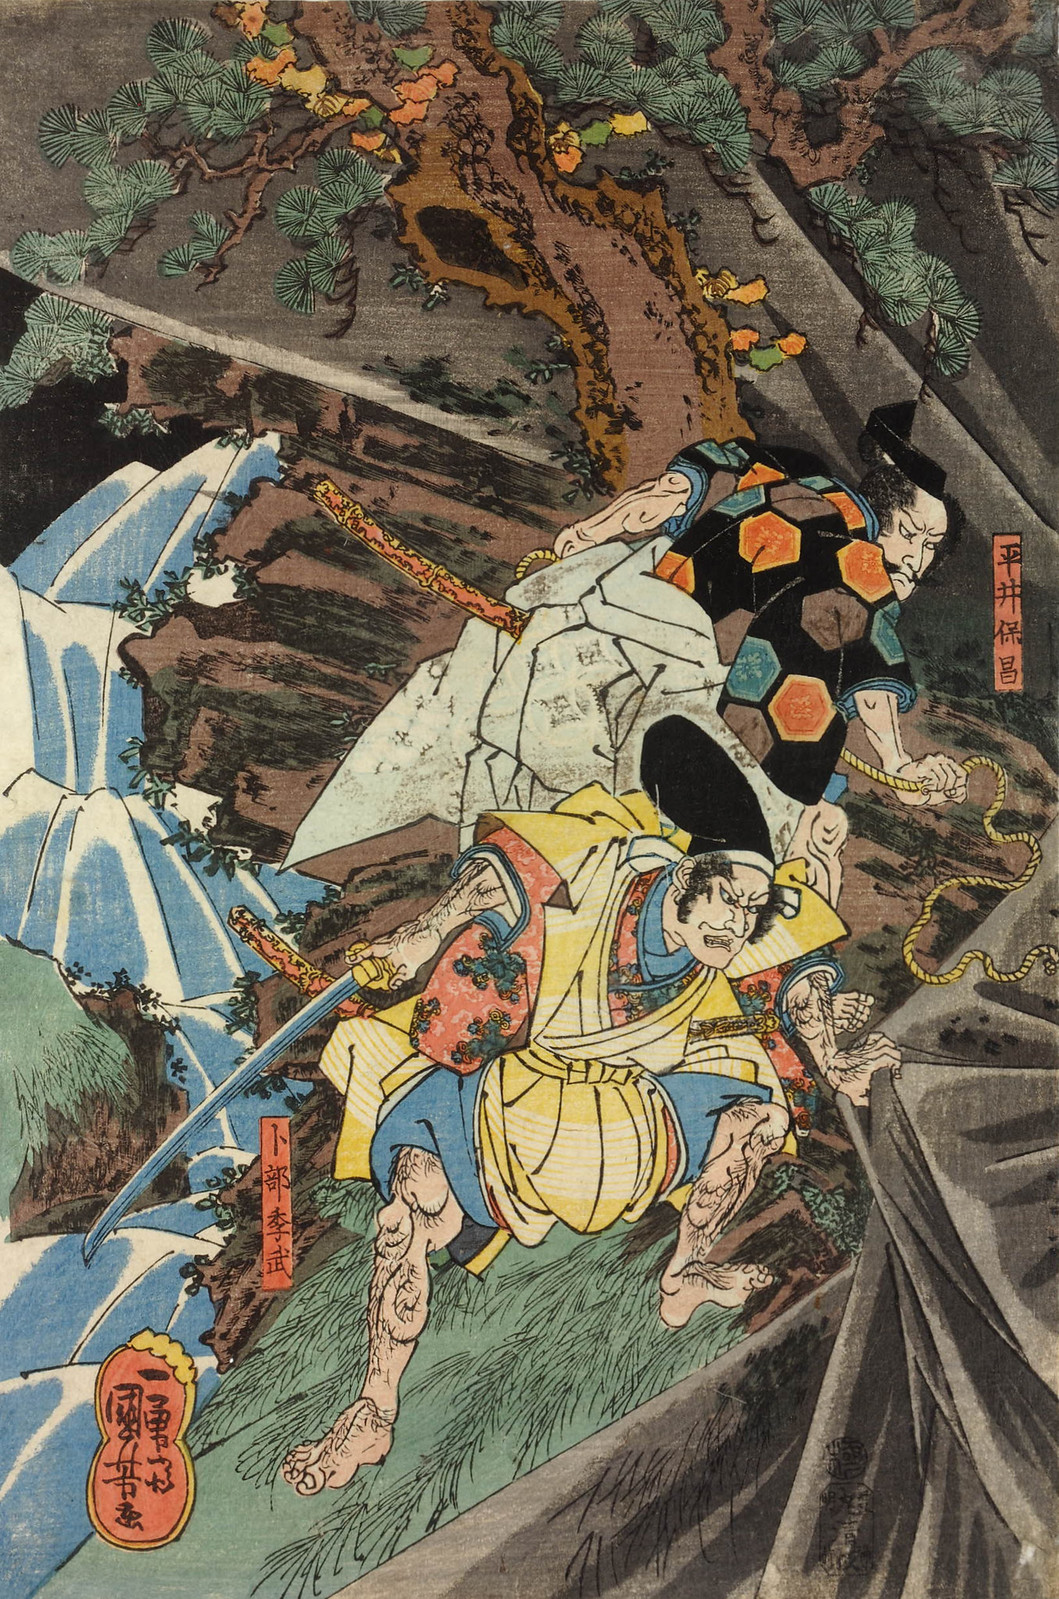 Utagawa Kuniyoshi - Minamoto no Yorimitsu no shitenno tsuchigumo taiji no zu, (The Earth Spider slain by Minamoto no Yorimitsu's retainers) 18th c (left panel)